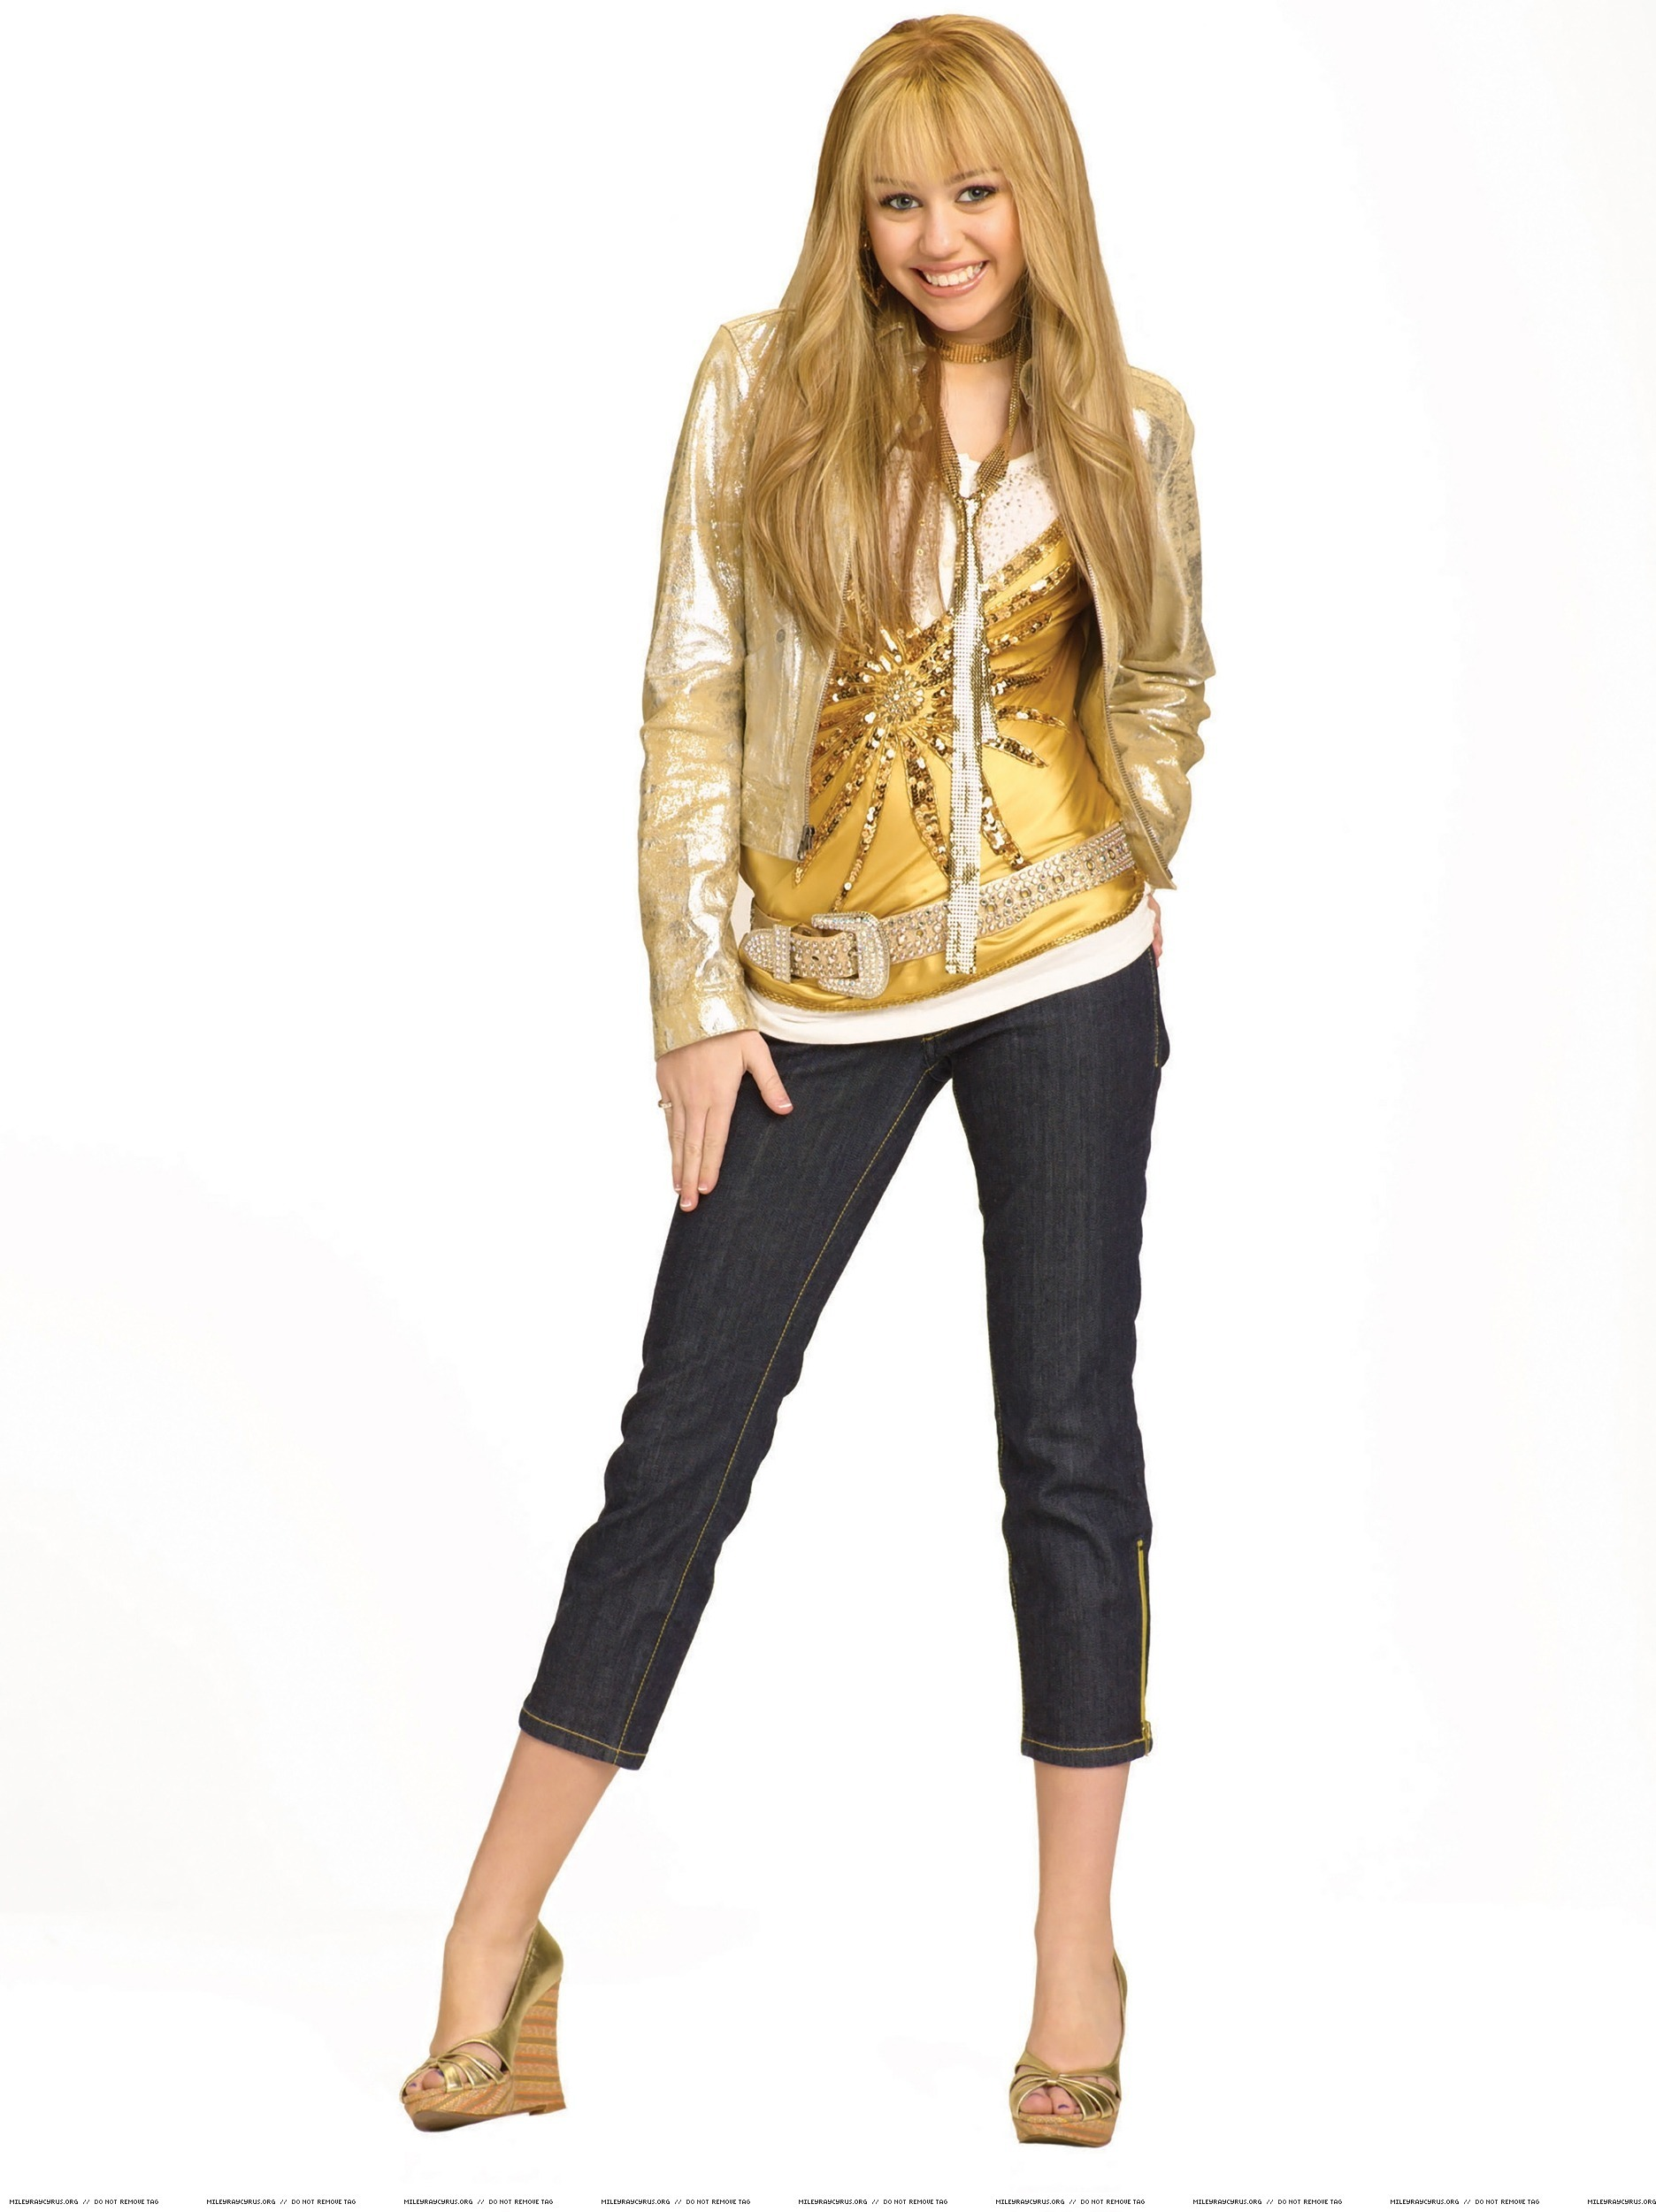 1000+ images about HANNAH MONTANA on Pinterest | Hannah montana